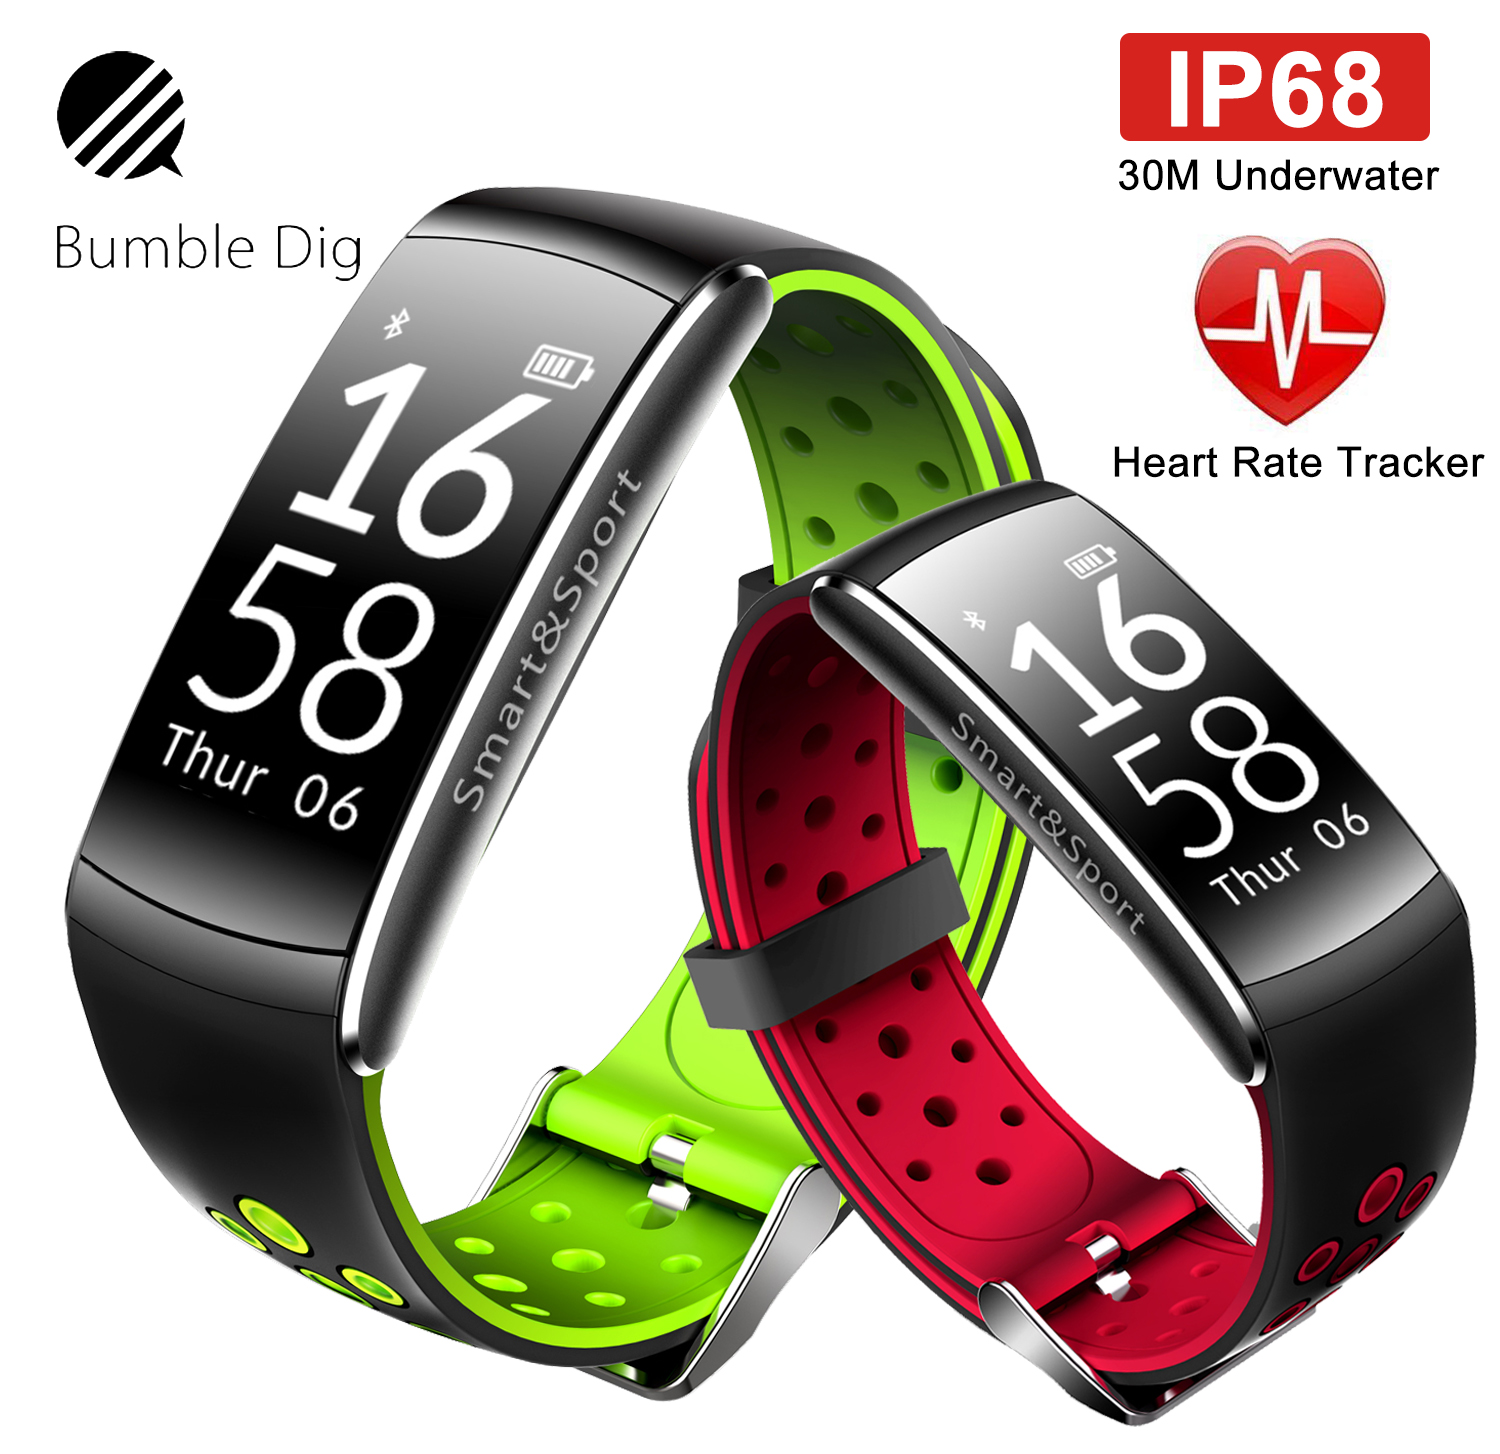 B-DIG Smart Wristband Heart Rate Monitor IP68 Waterproof Fitness Tracker Blood Pressure gps Bluetooth For Android IOS women men